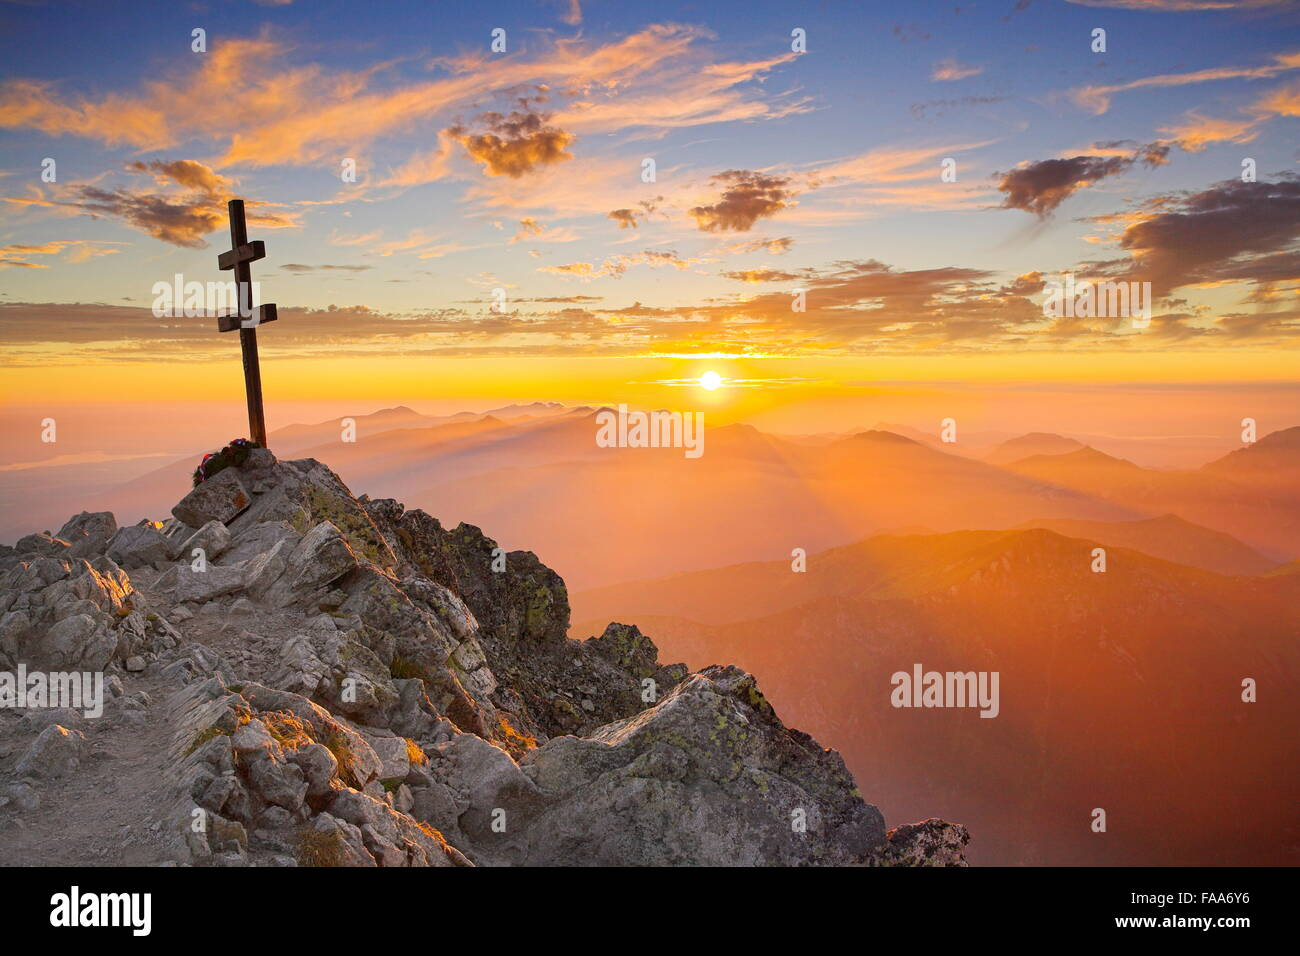 Krywan Peak at sunset, Tatra Mountains, Slovakia - Stock Image